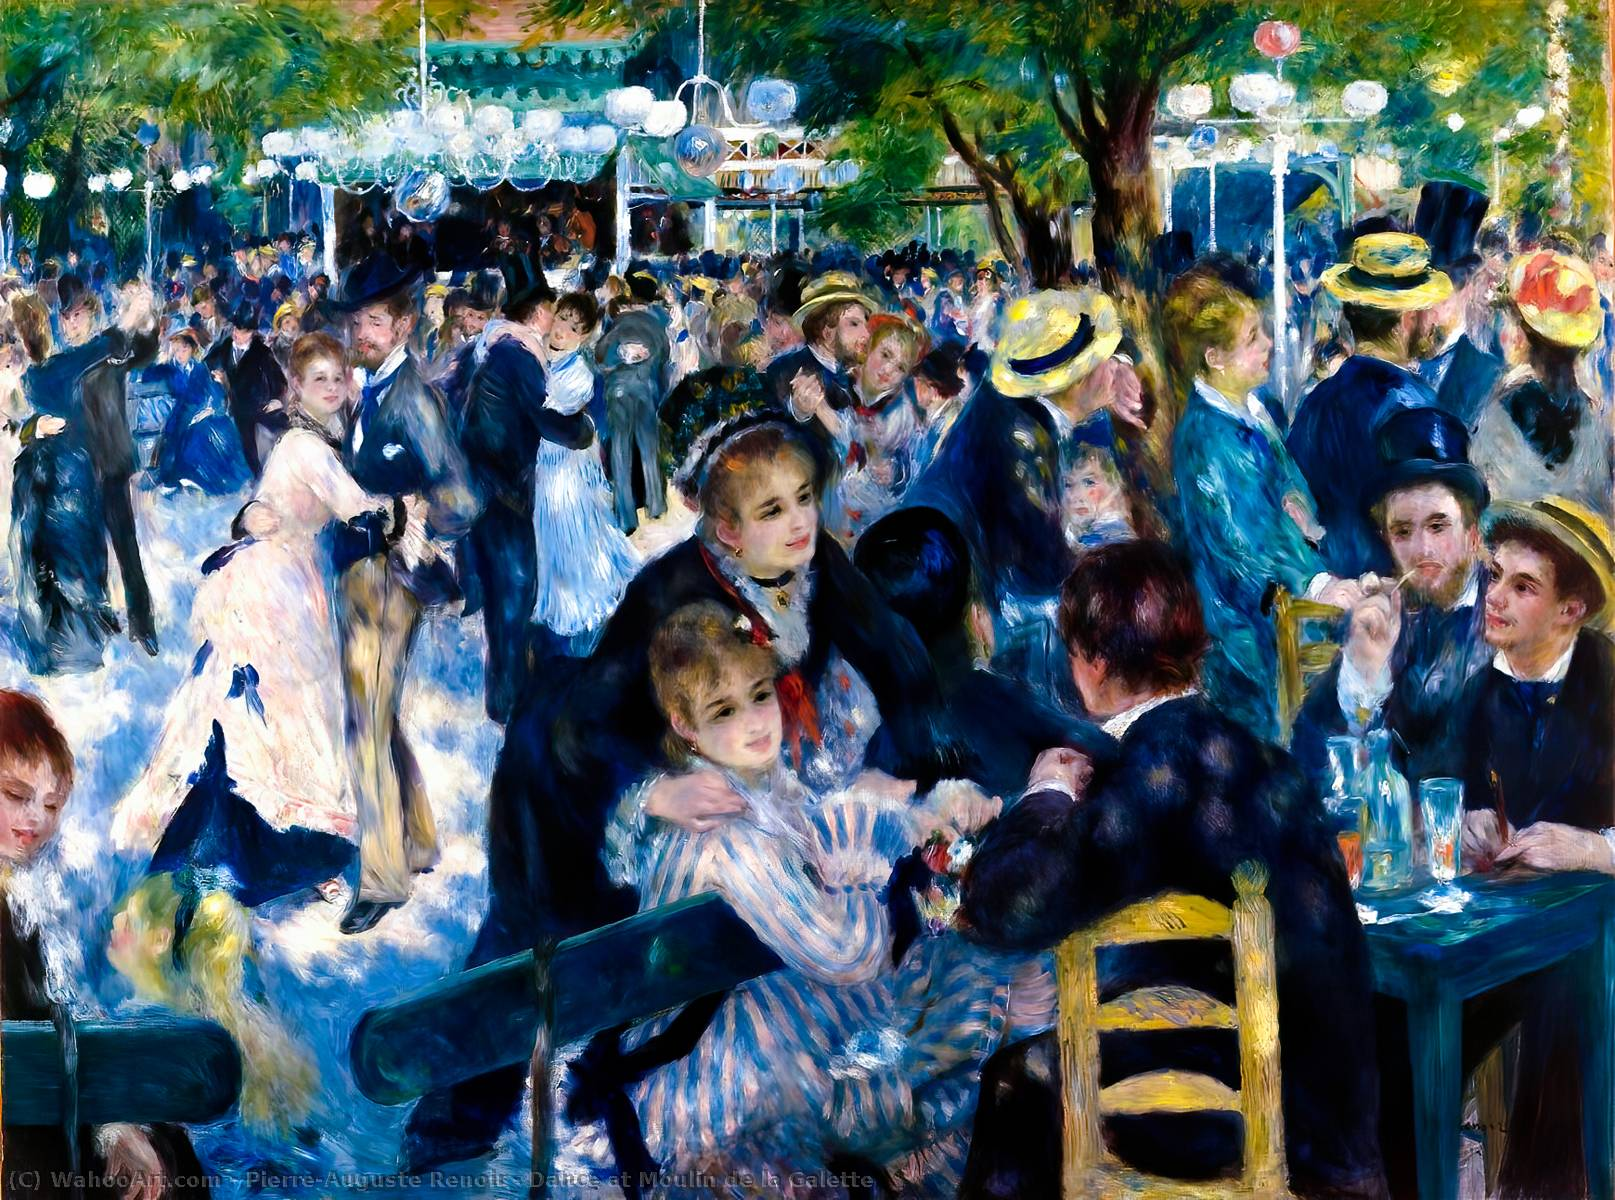 Dance at Moulin de la Galette, 1876 by Pierre-Auguste Renoir (1841-1919, France) | Art Reproduction | WahooArt.com